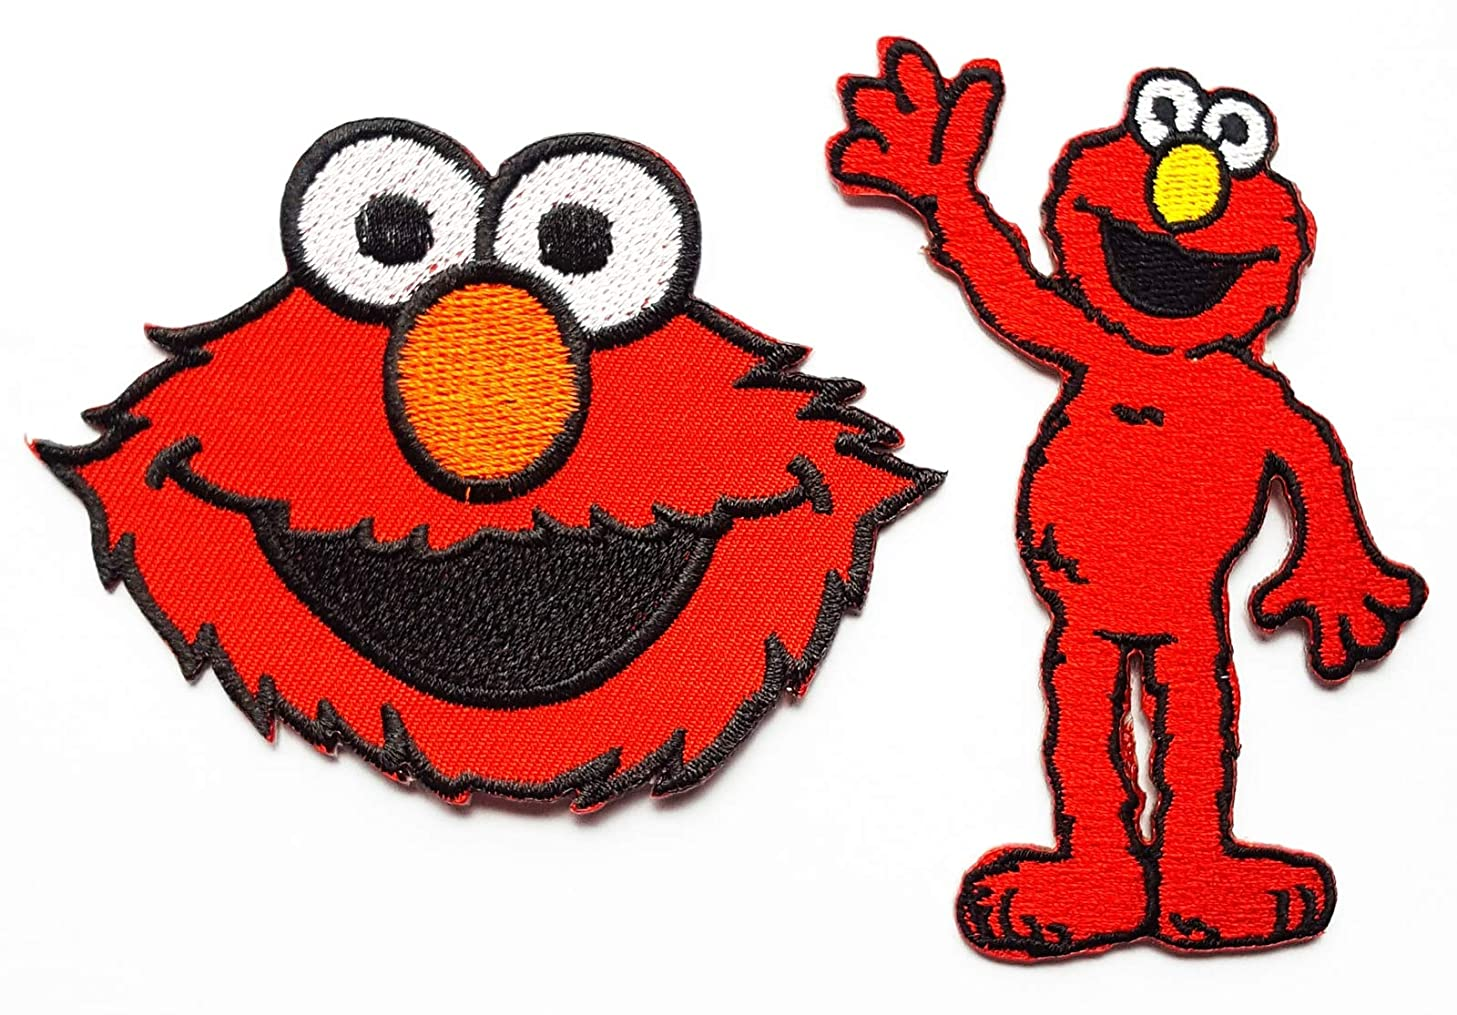 Elmo Say Hi Sesame Street Cookie Monster Patches Children Kids Cartoon Patch Applique for Clothes Great as Happy Birthday Gift